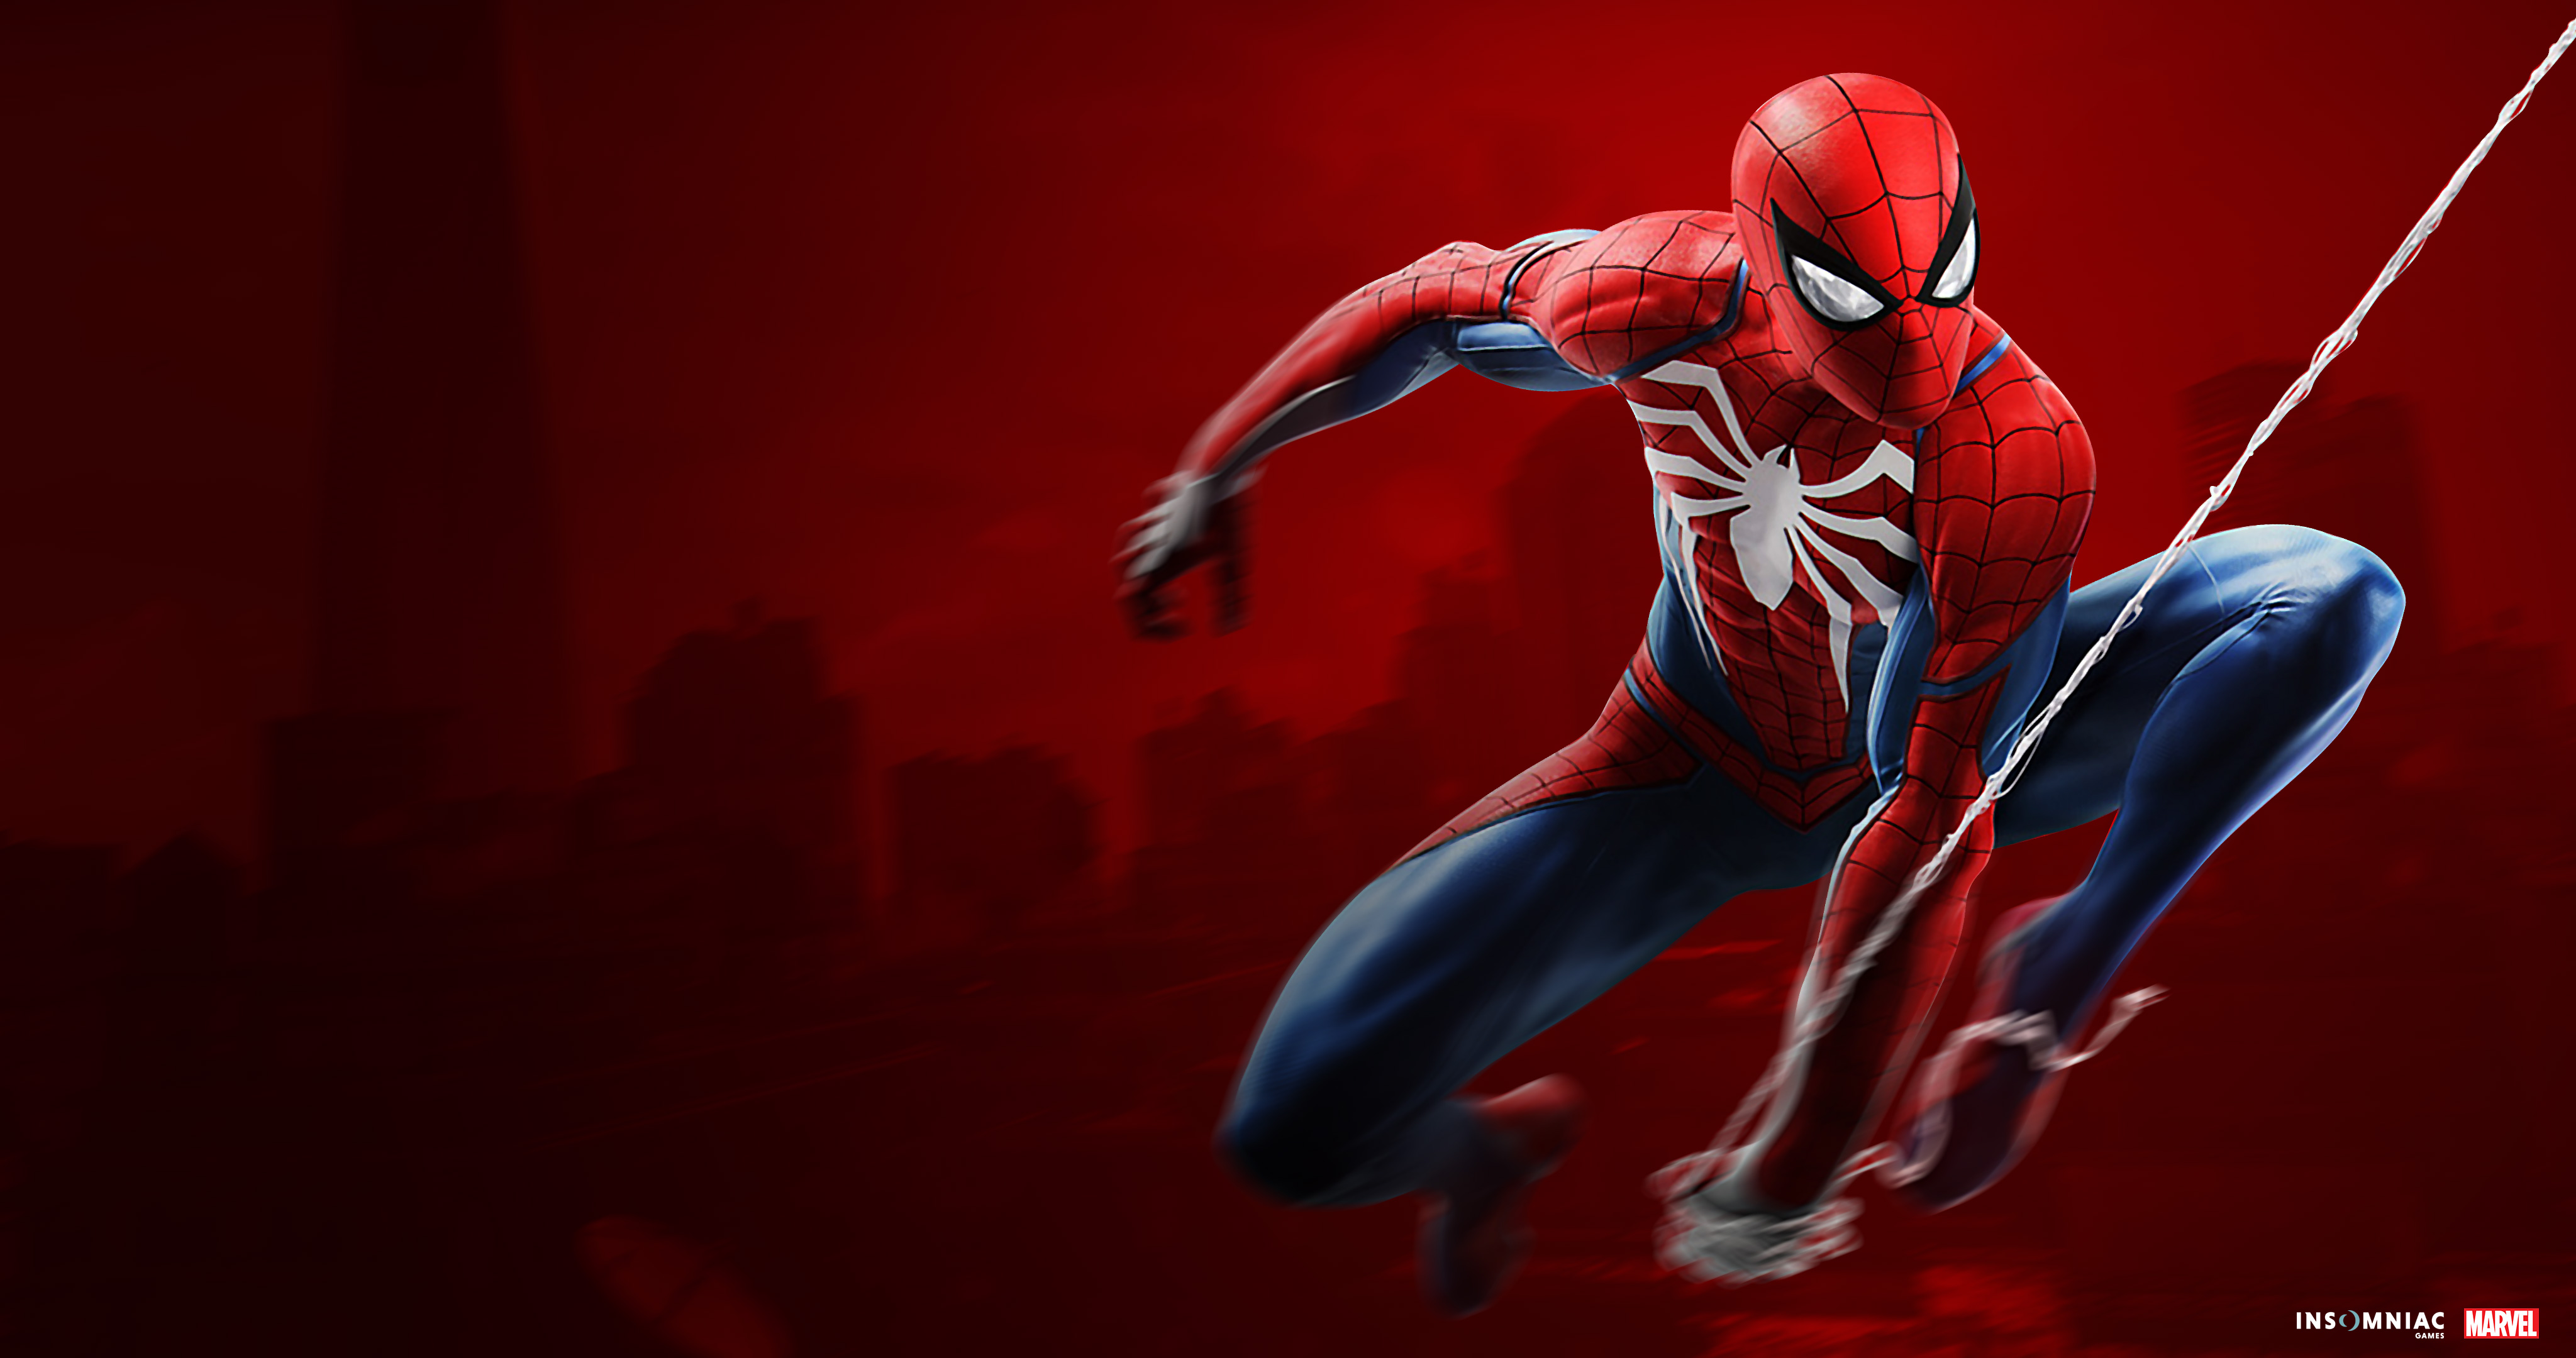 Spiderman Ps4 4k Hd Games 4k Wallpapers Images